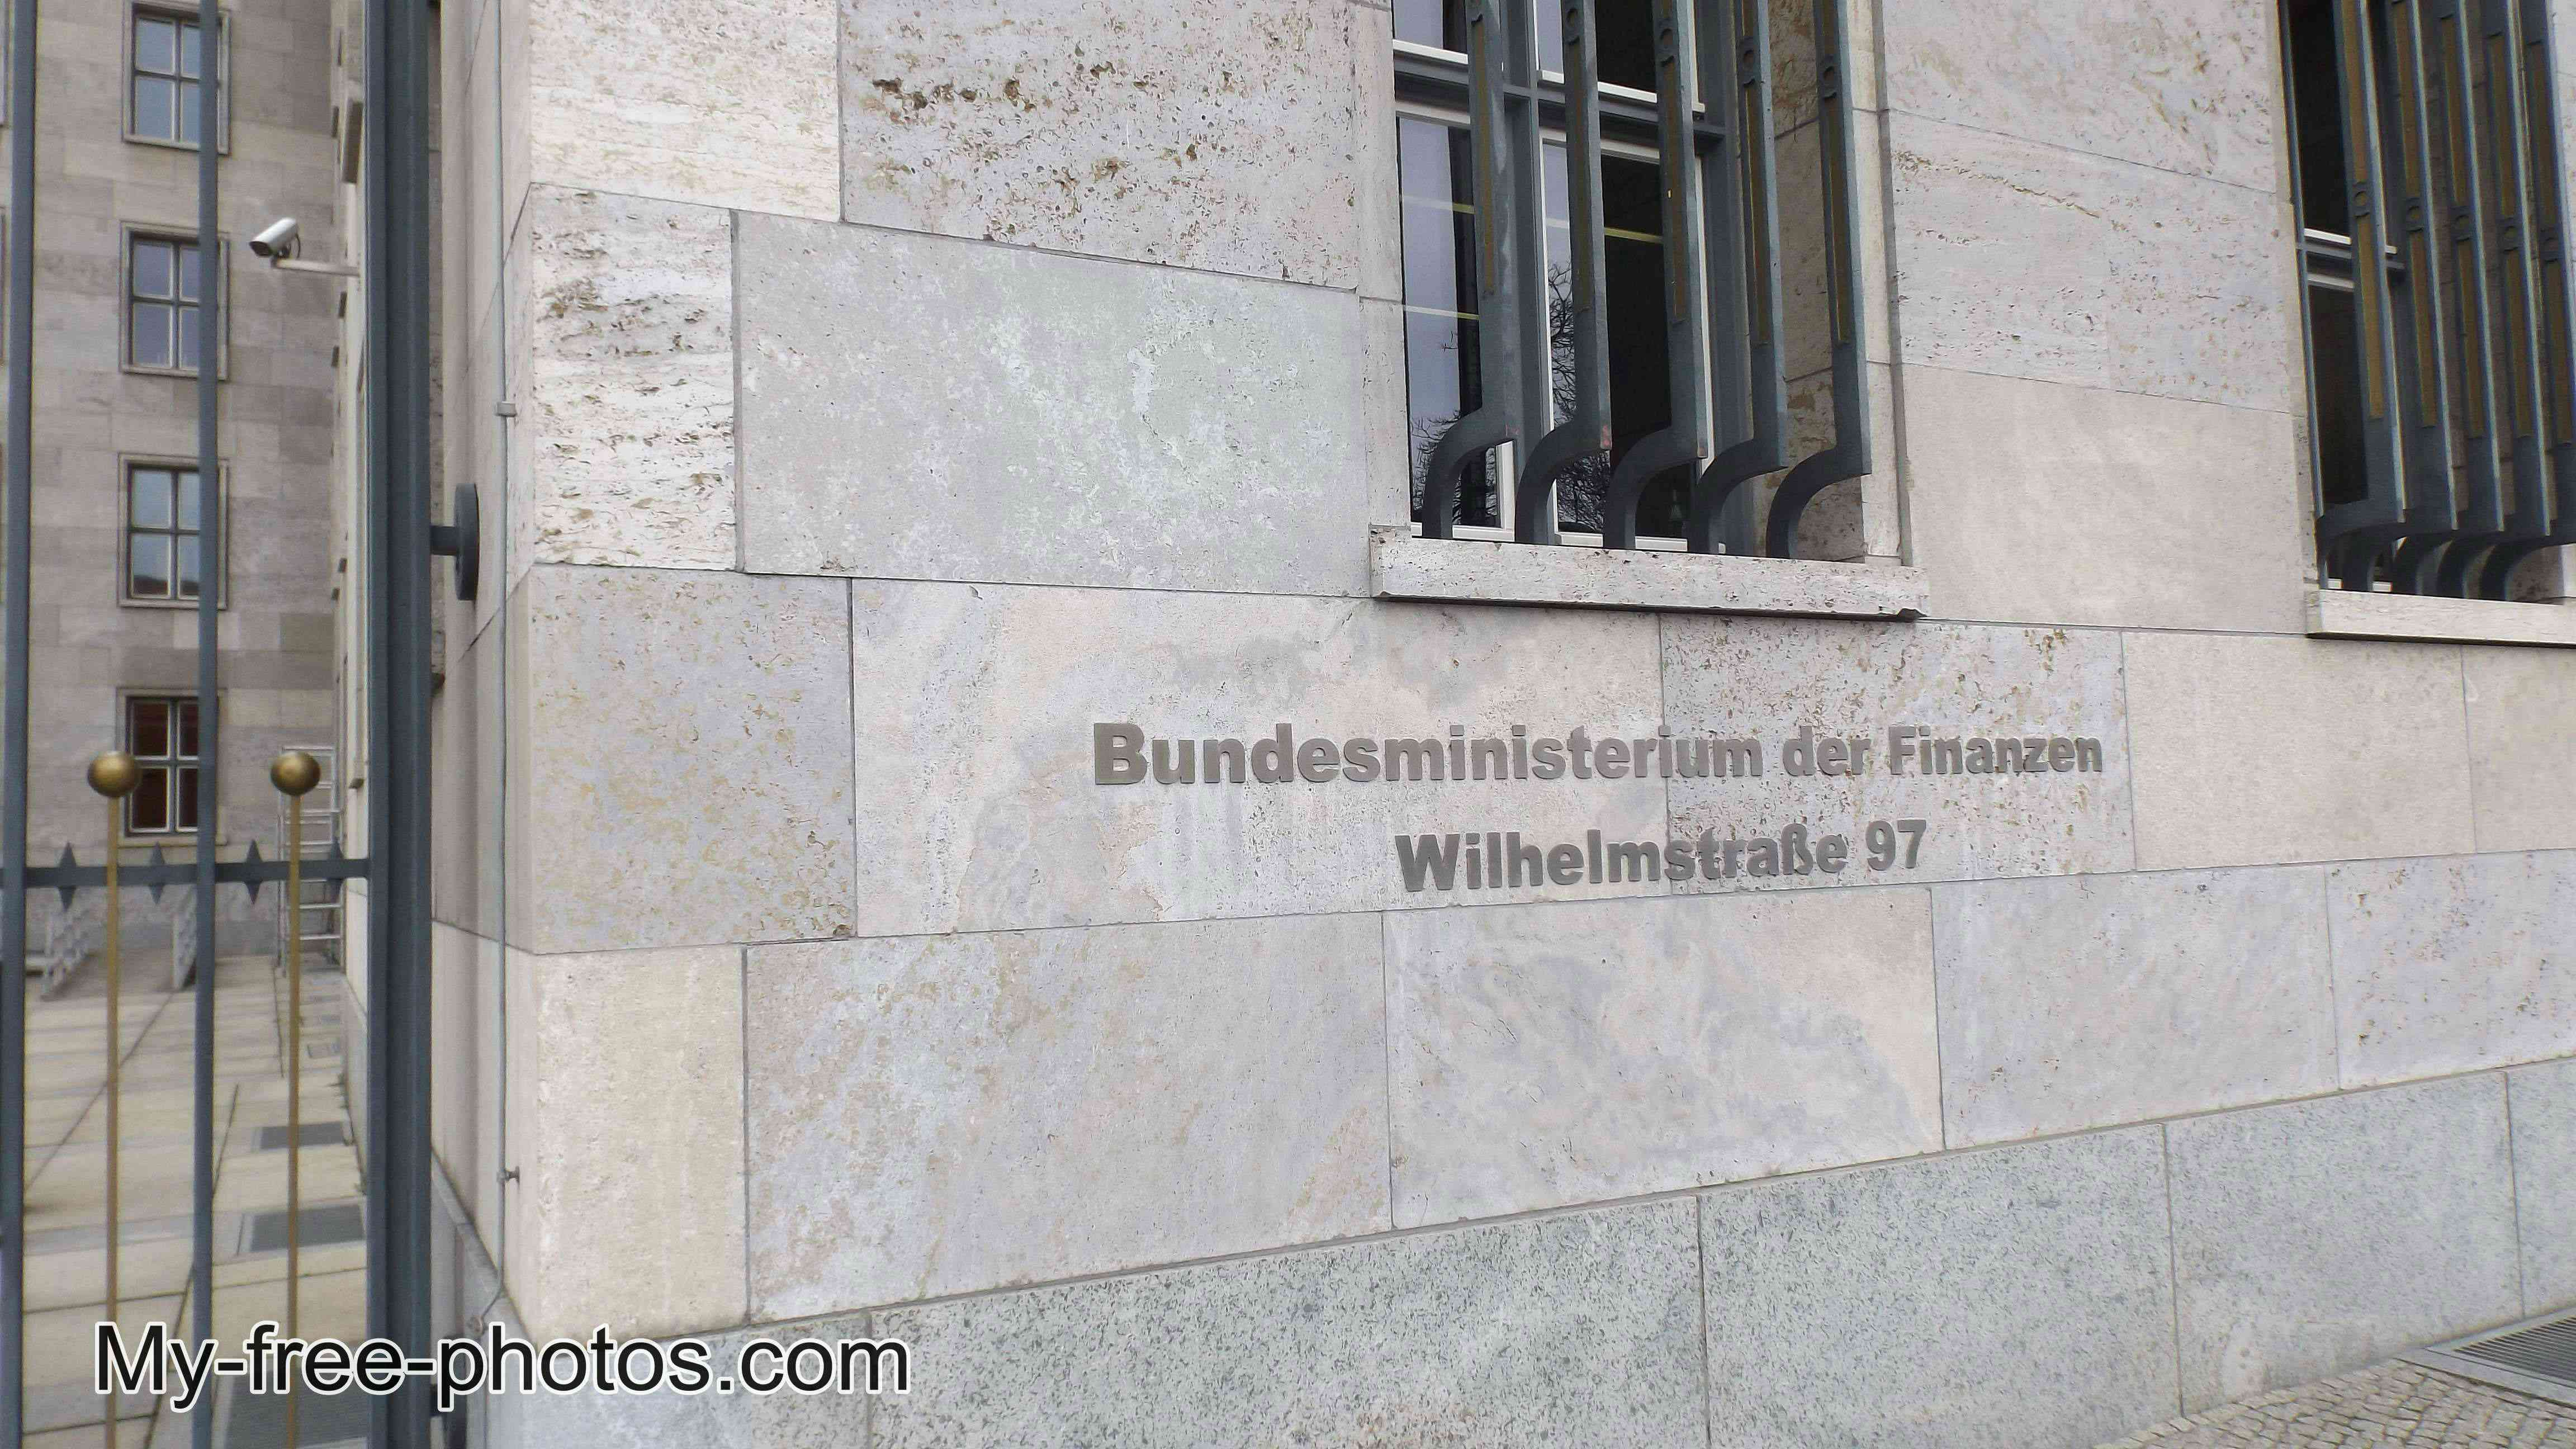 Ministry of Finance Berlin,germany